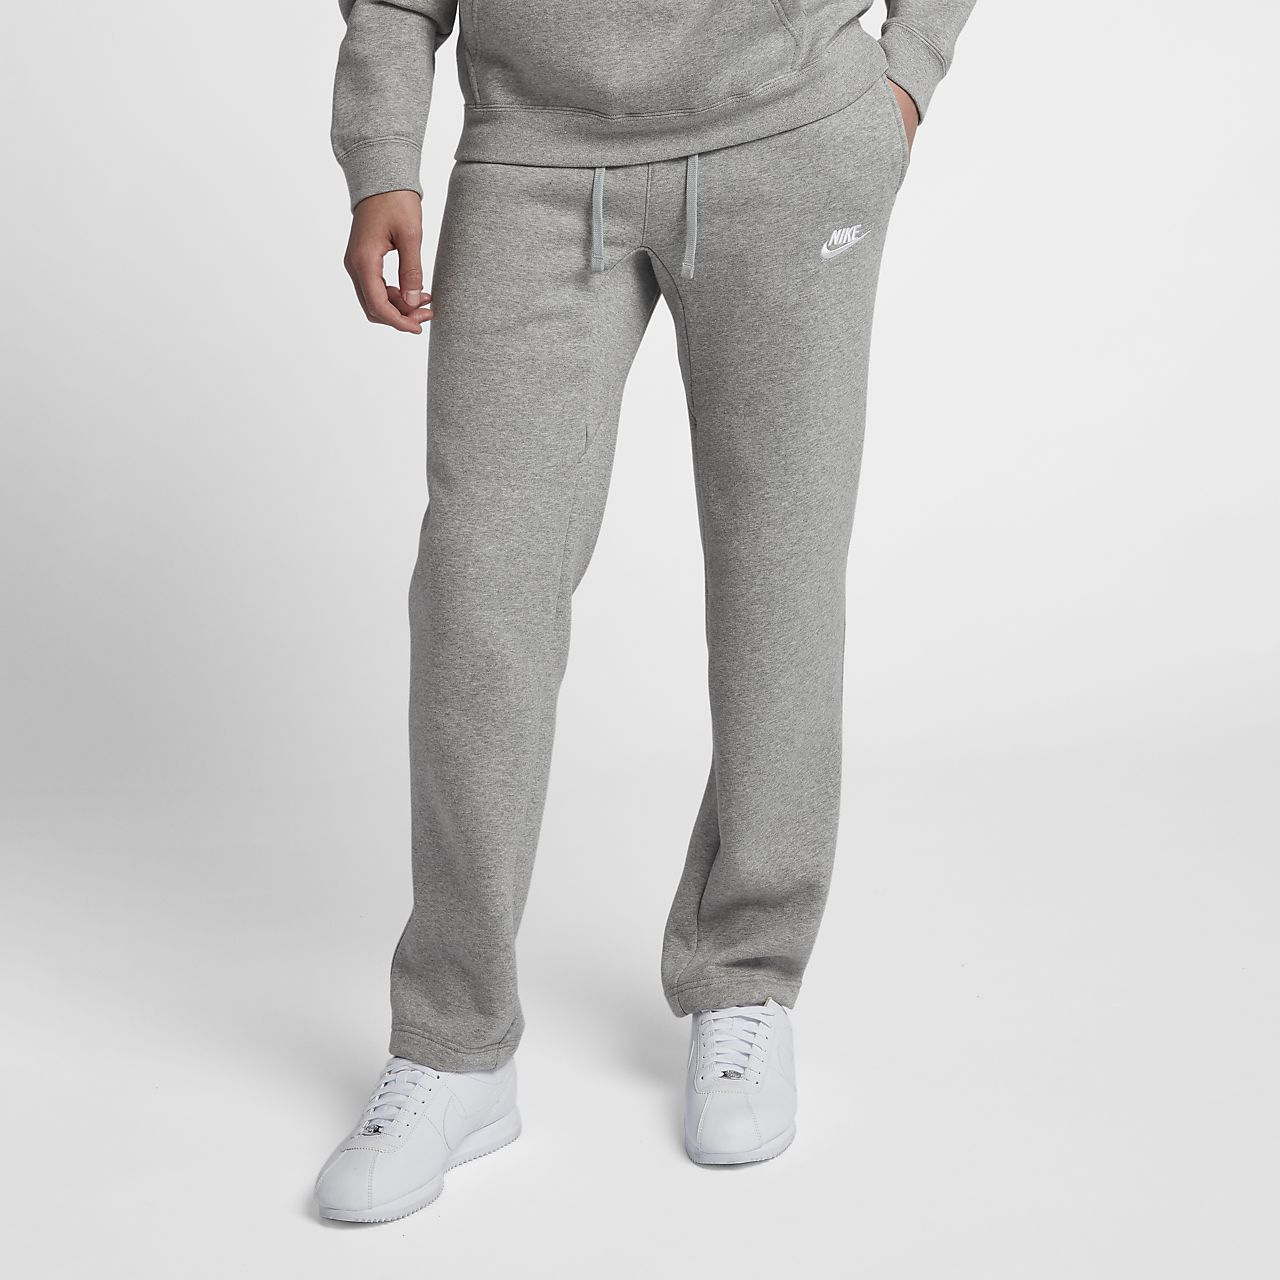 c051c9aef7a8 Nike Sportswear Club Fleece Men s Pants. Nike.com